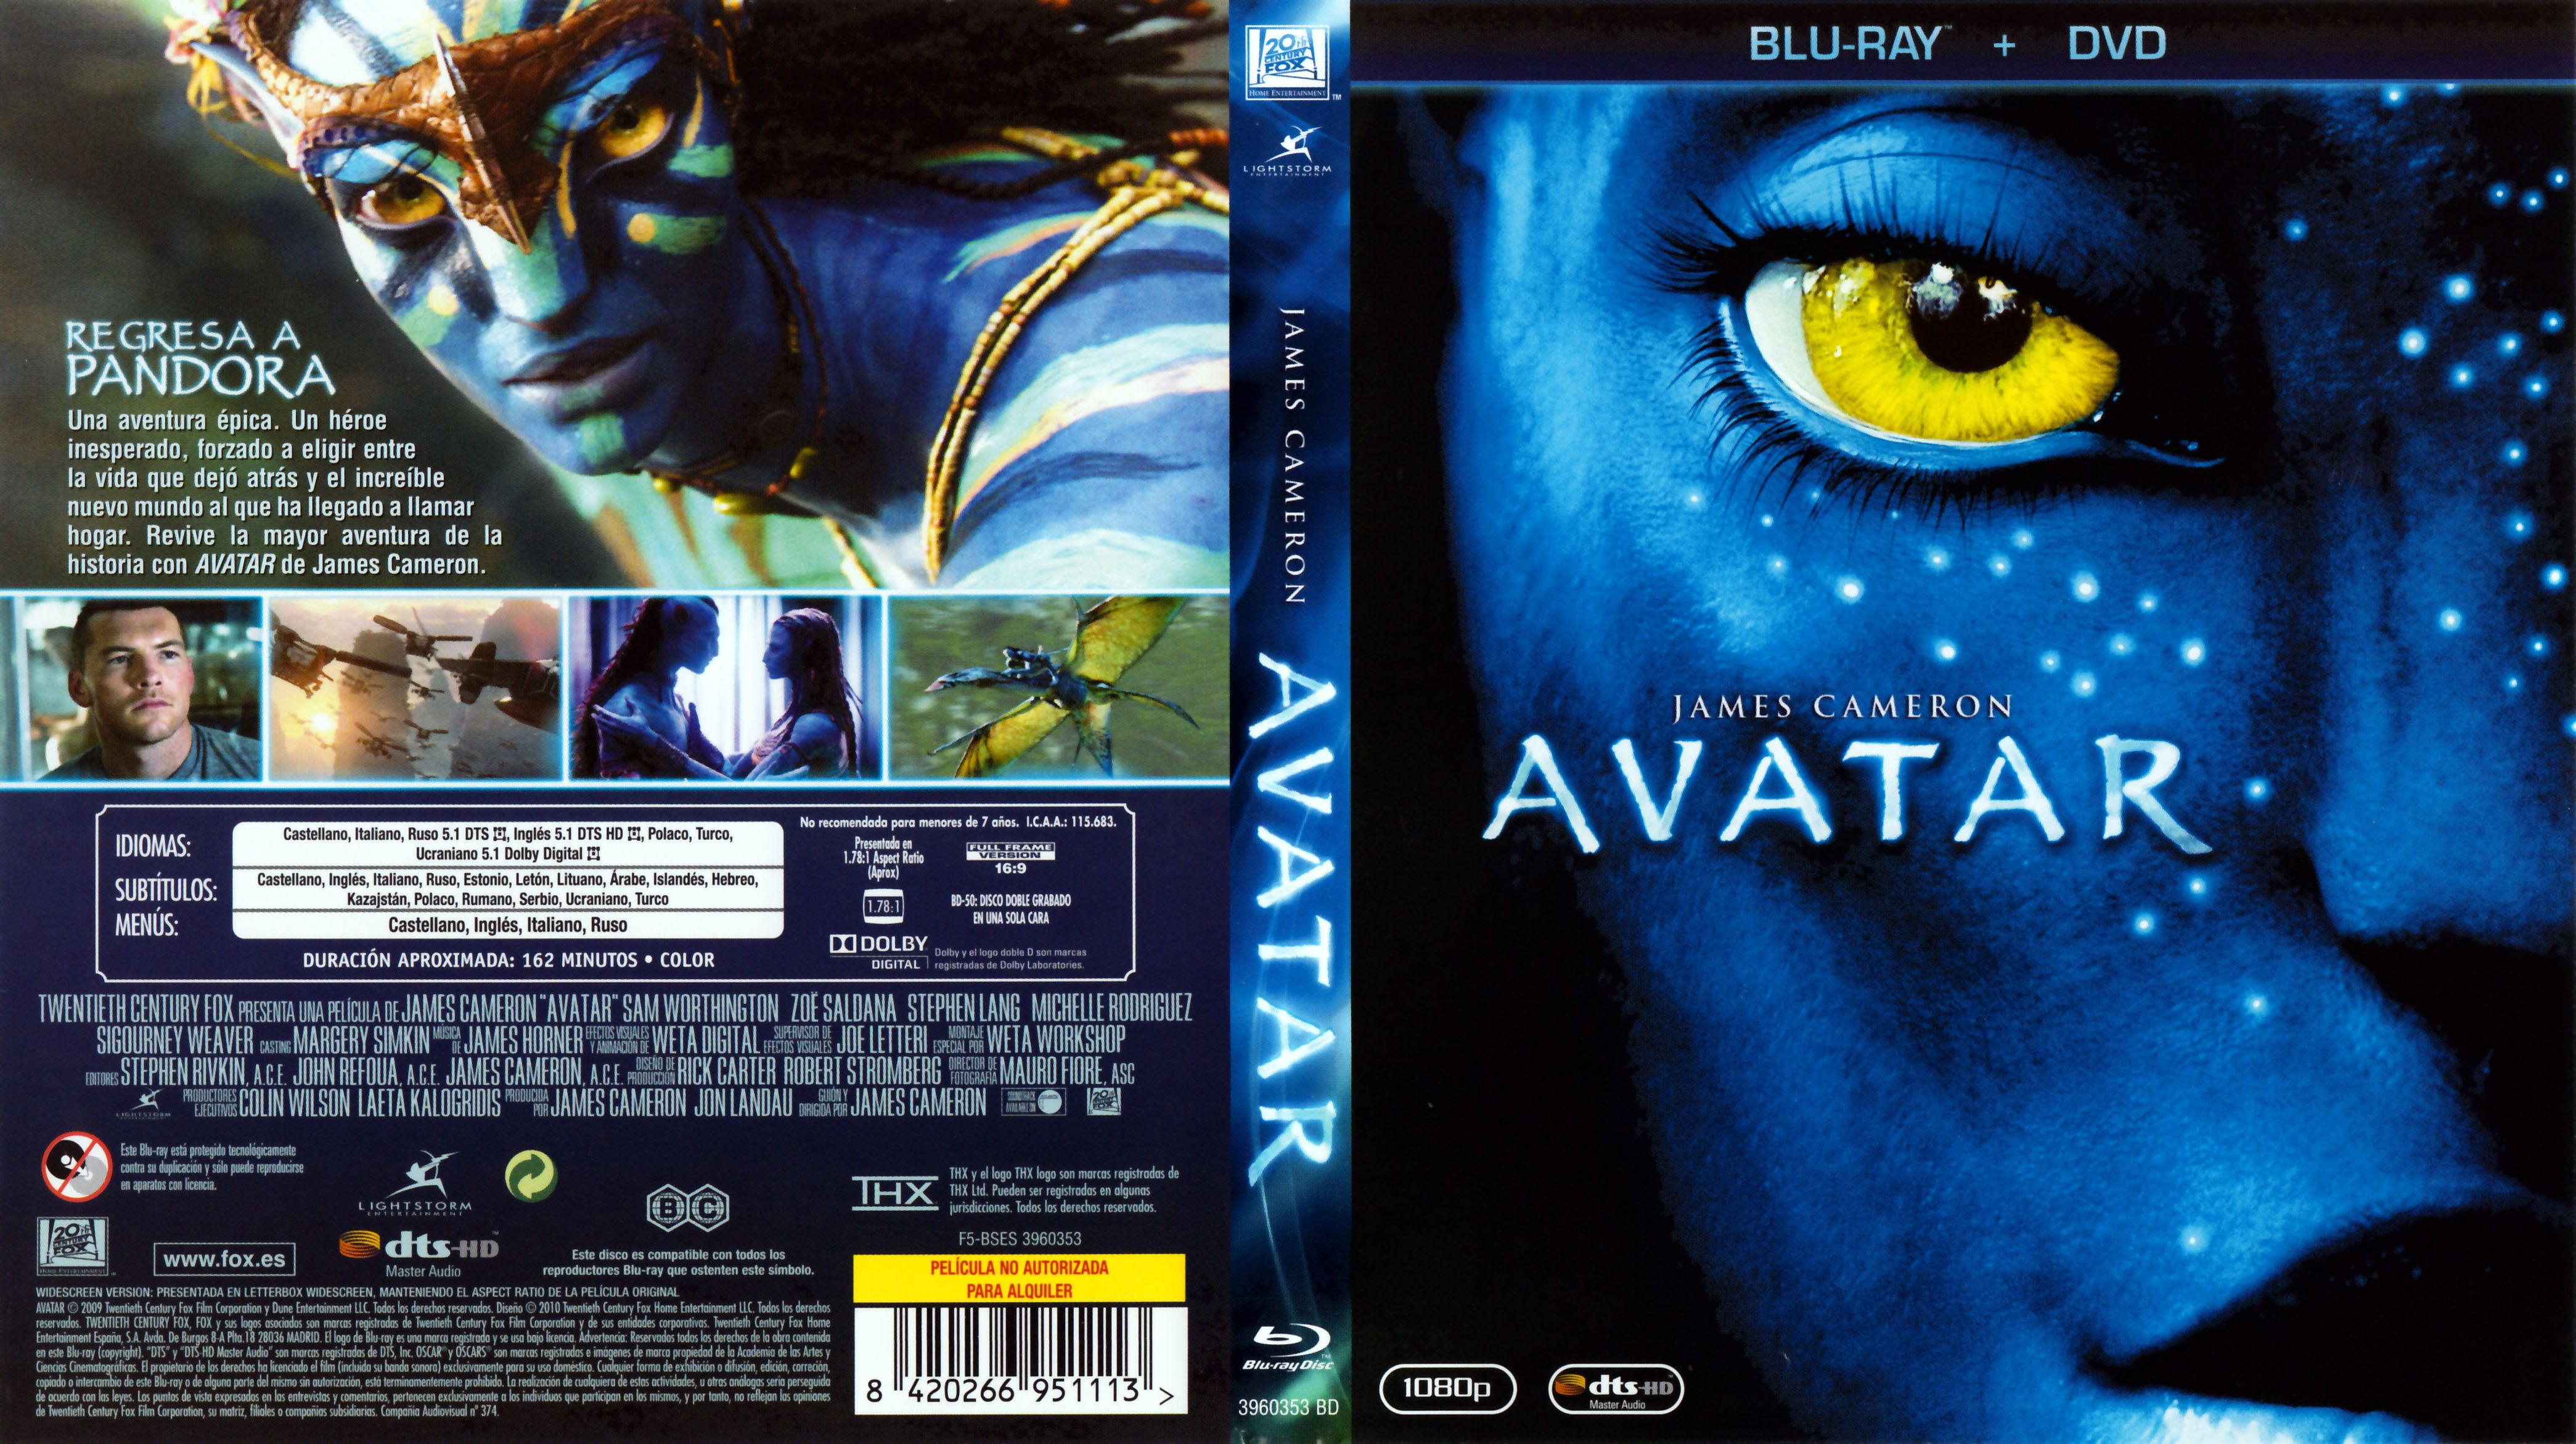 3d movies avatar blu-ray / hp color laserjet cm2320 mfp series pcl 6